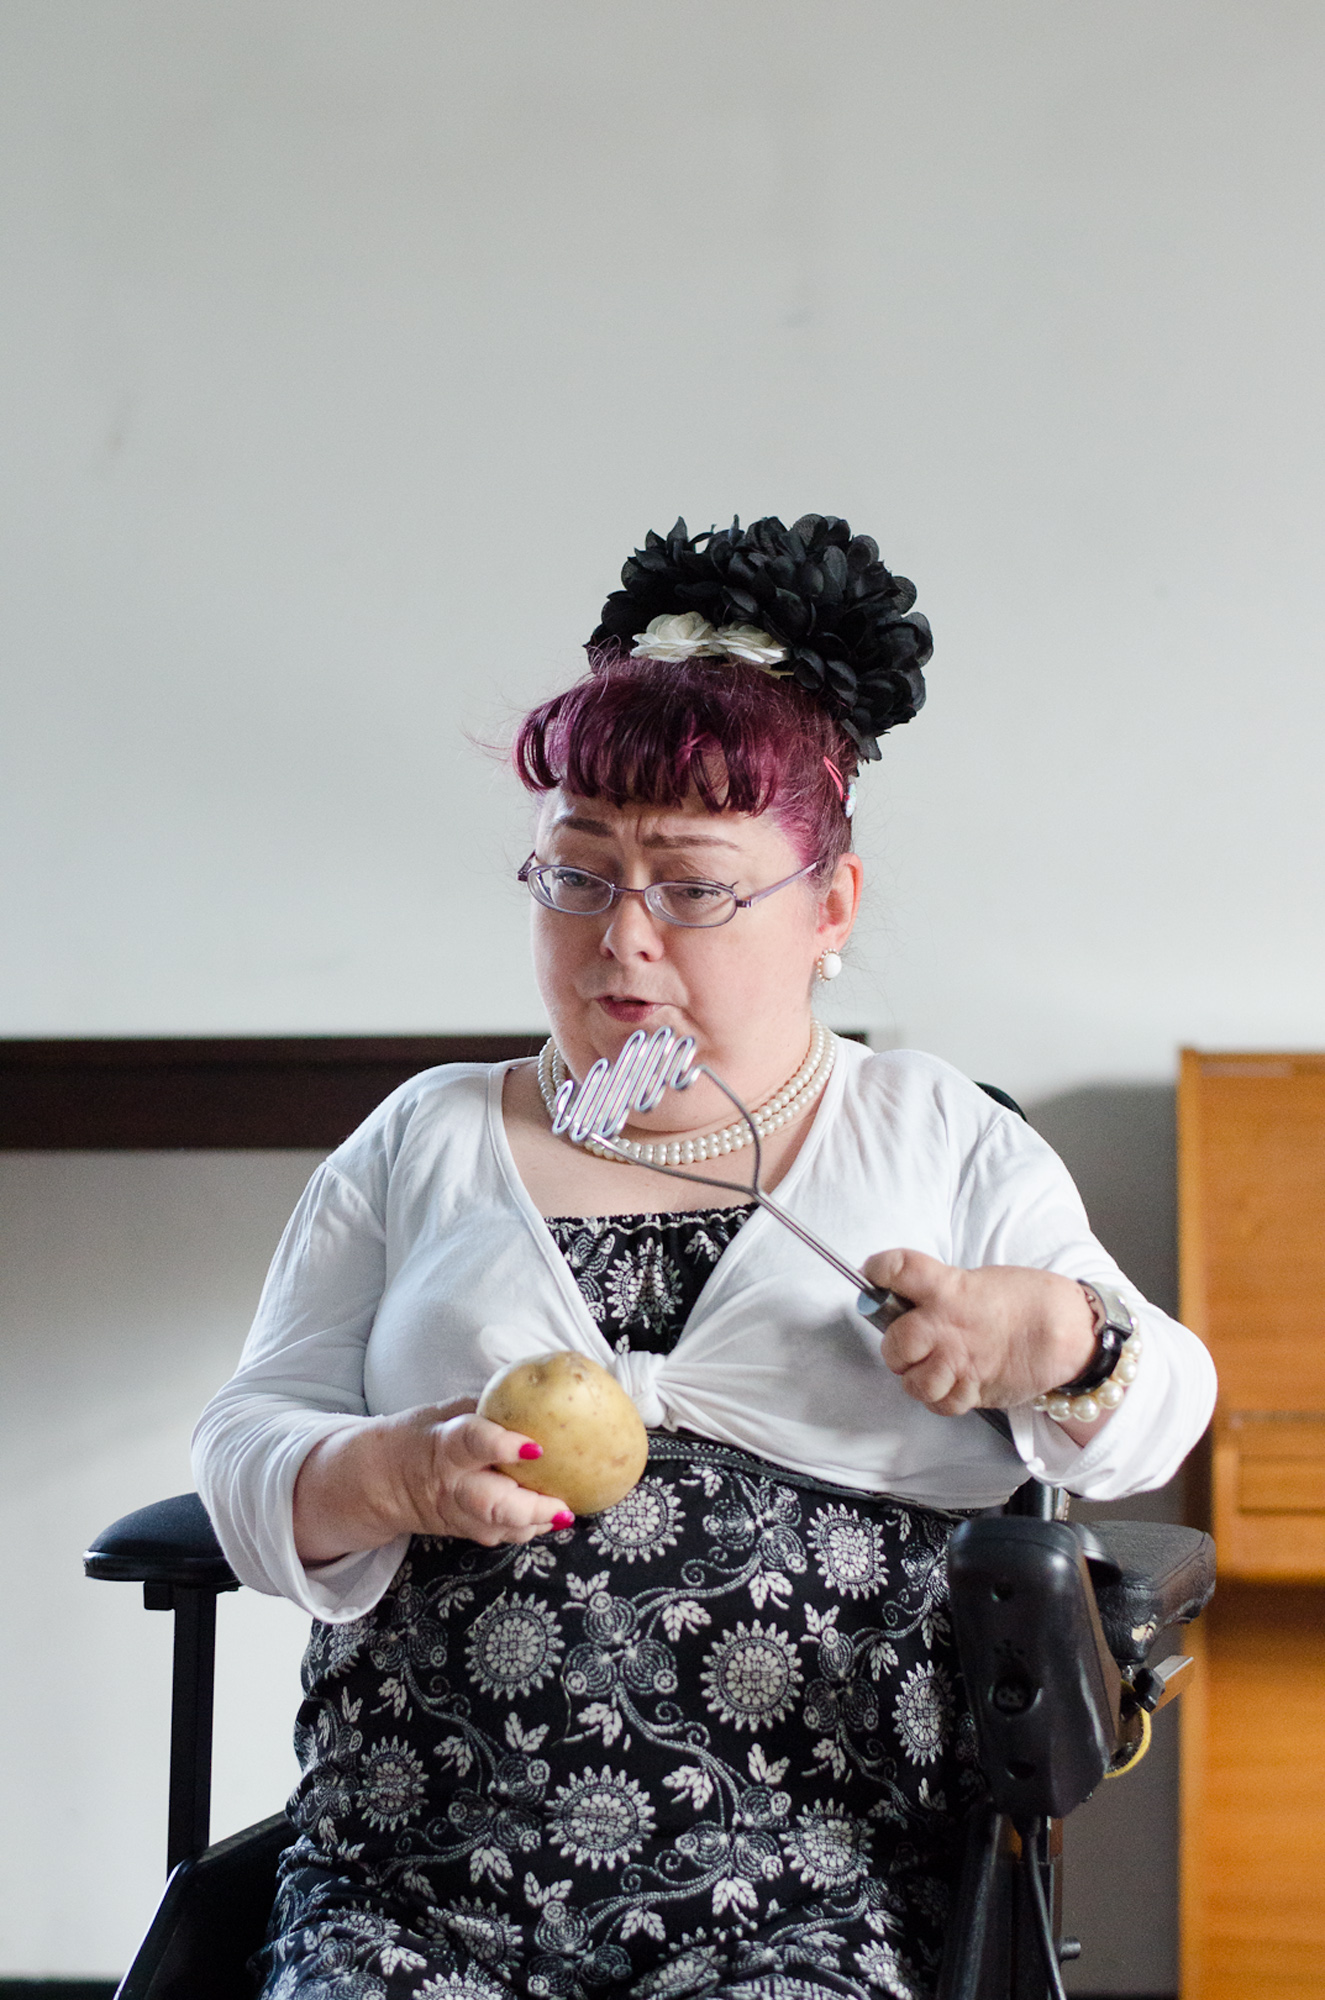 Penny holds a potato and a masher during her rehearsal of her poem Mash Up.